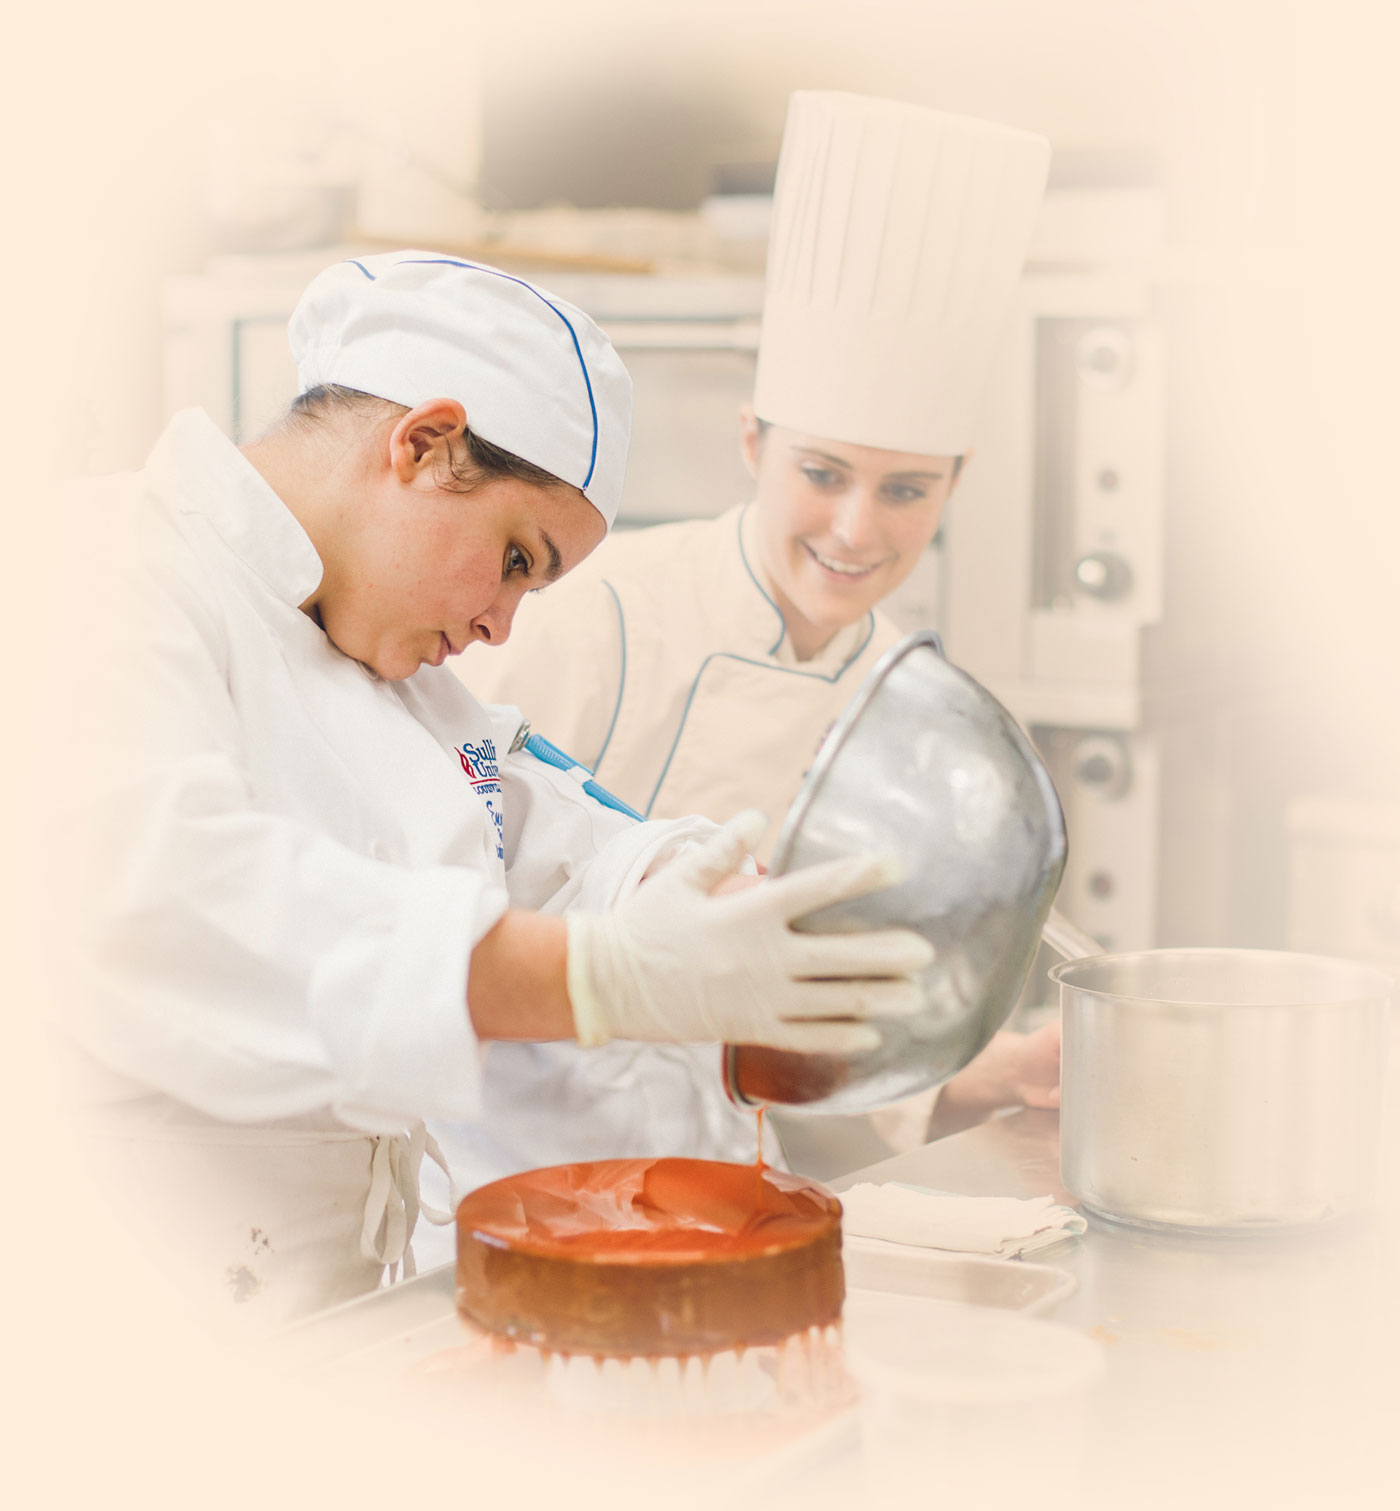 culinary student pouring a topping on a cake